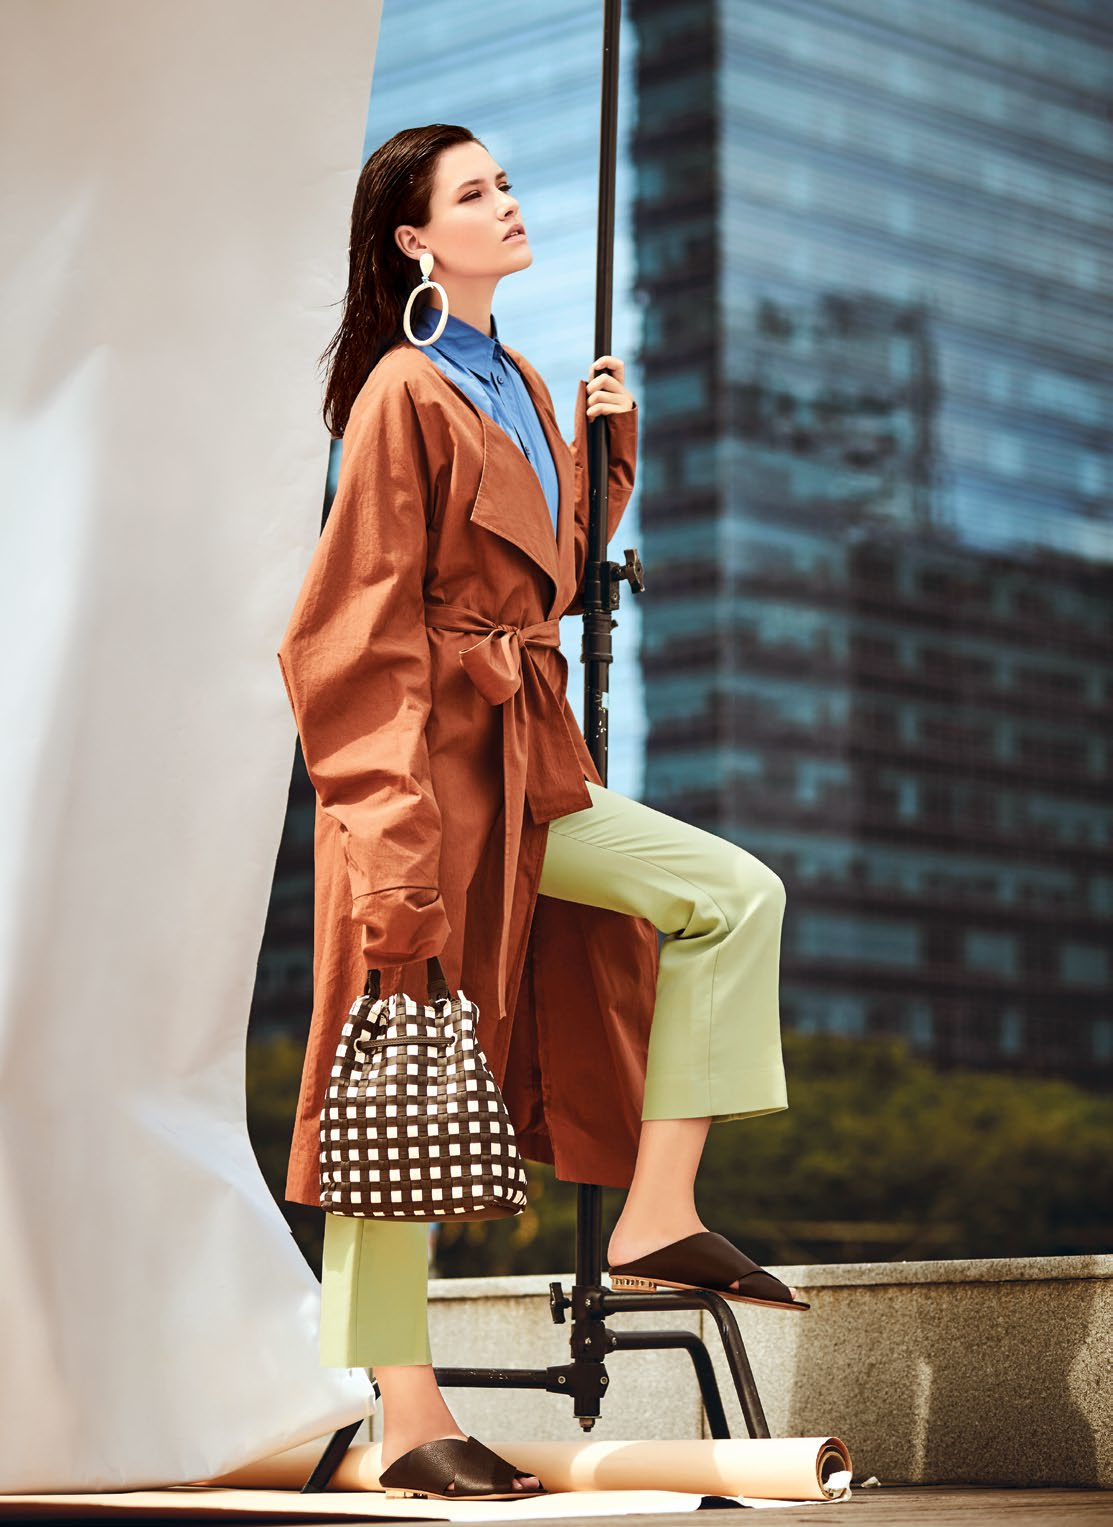 Coat, $275, from COS. Blouse and pants, both from Sandro. Earrings from Bimba Y Lola. Handbag, $785, from Furla. Sandals, $870, from Salvatore Ferragamo.